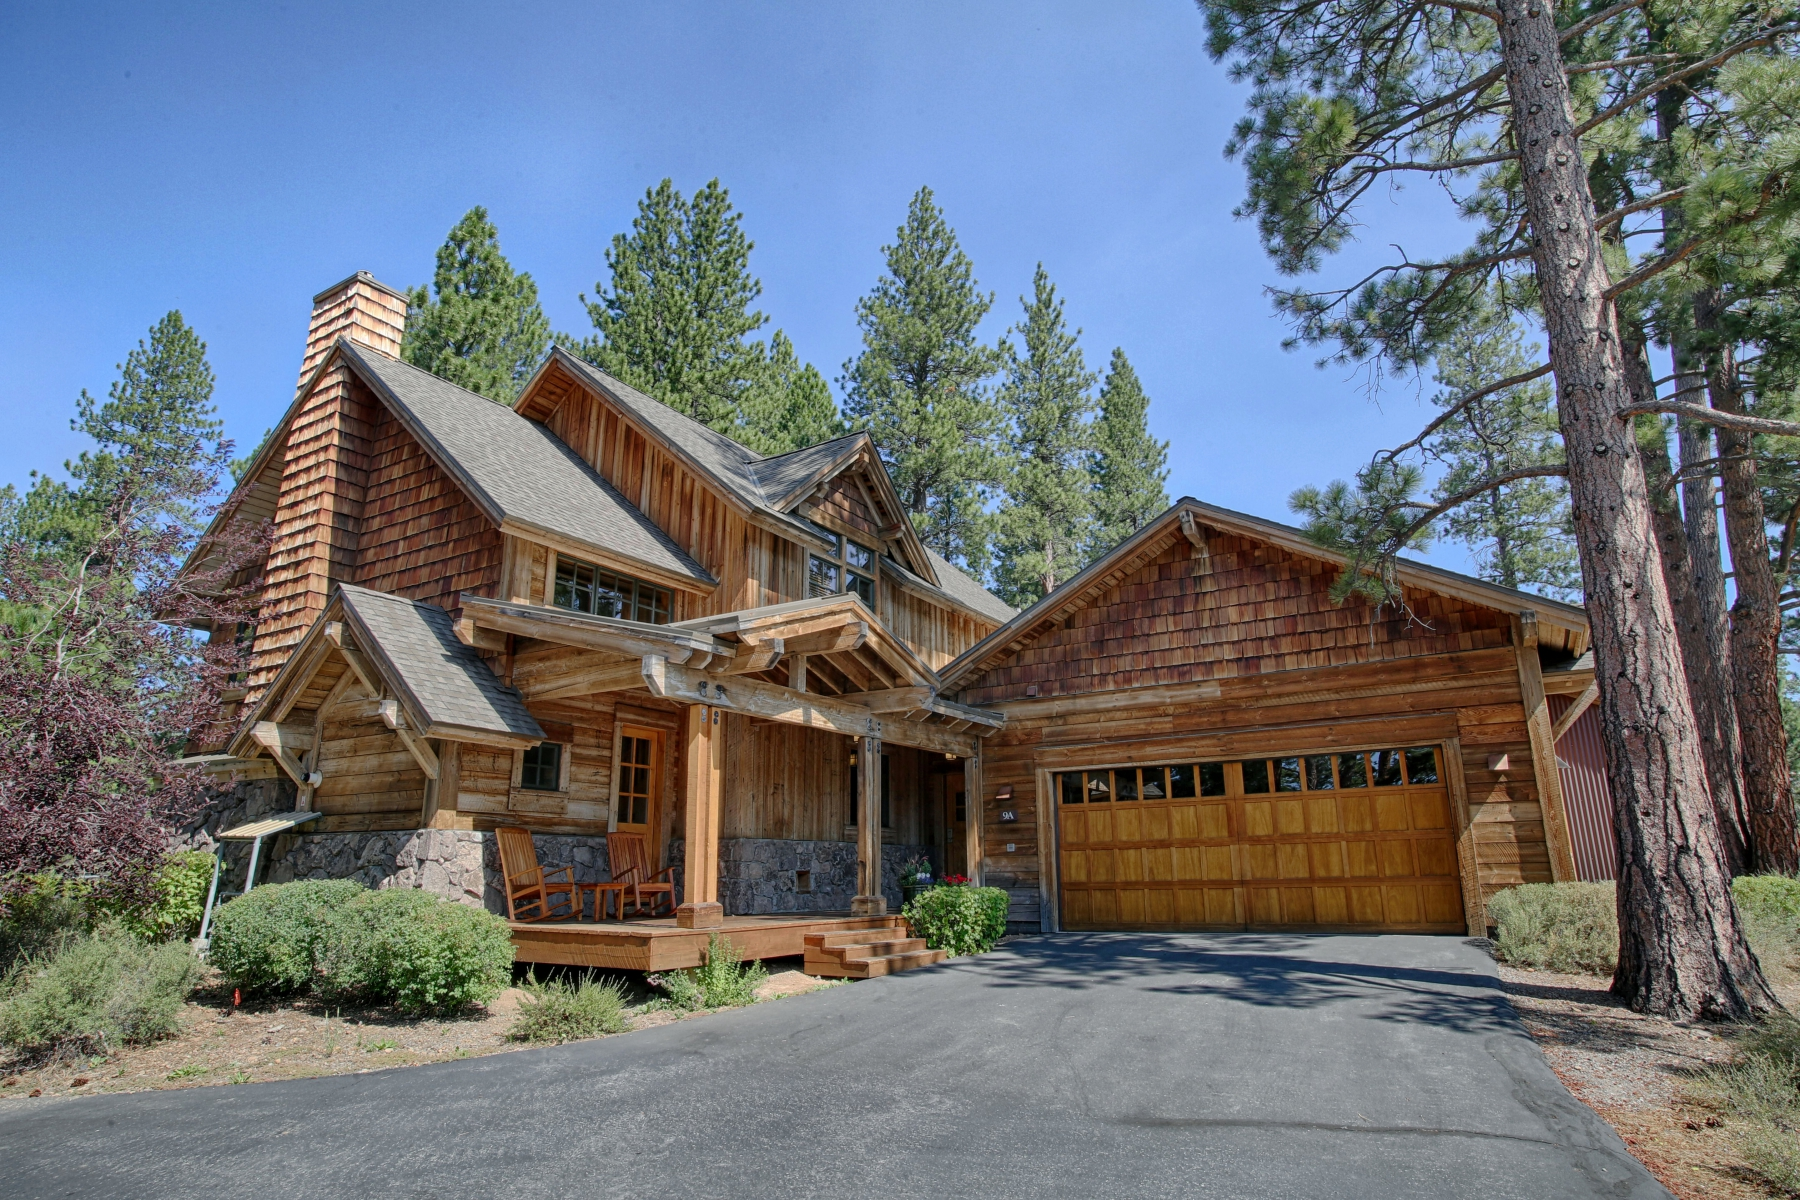 Single Family Home for Active at 12585 Legacy Court A13A-13 12585 Legacy Court A13A1 Truckee, California 96161 United States